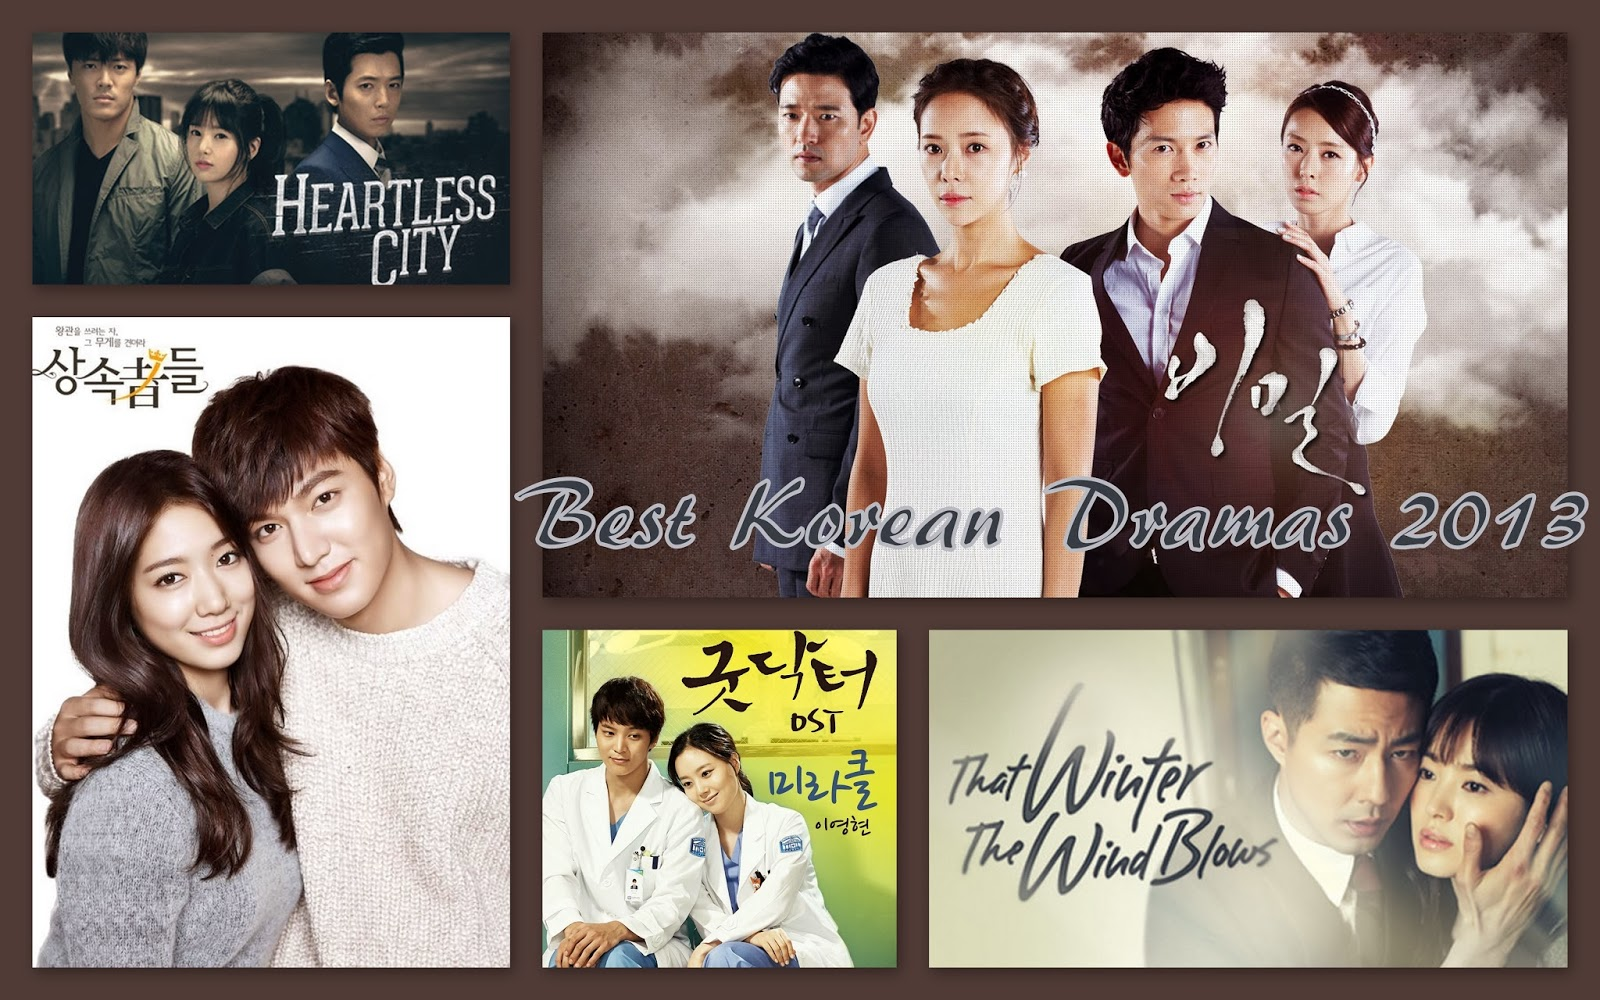 Kdrama Therapy The Best Korean Dramas Of 2013-4641